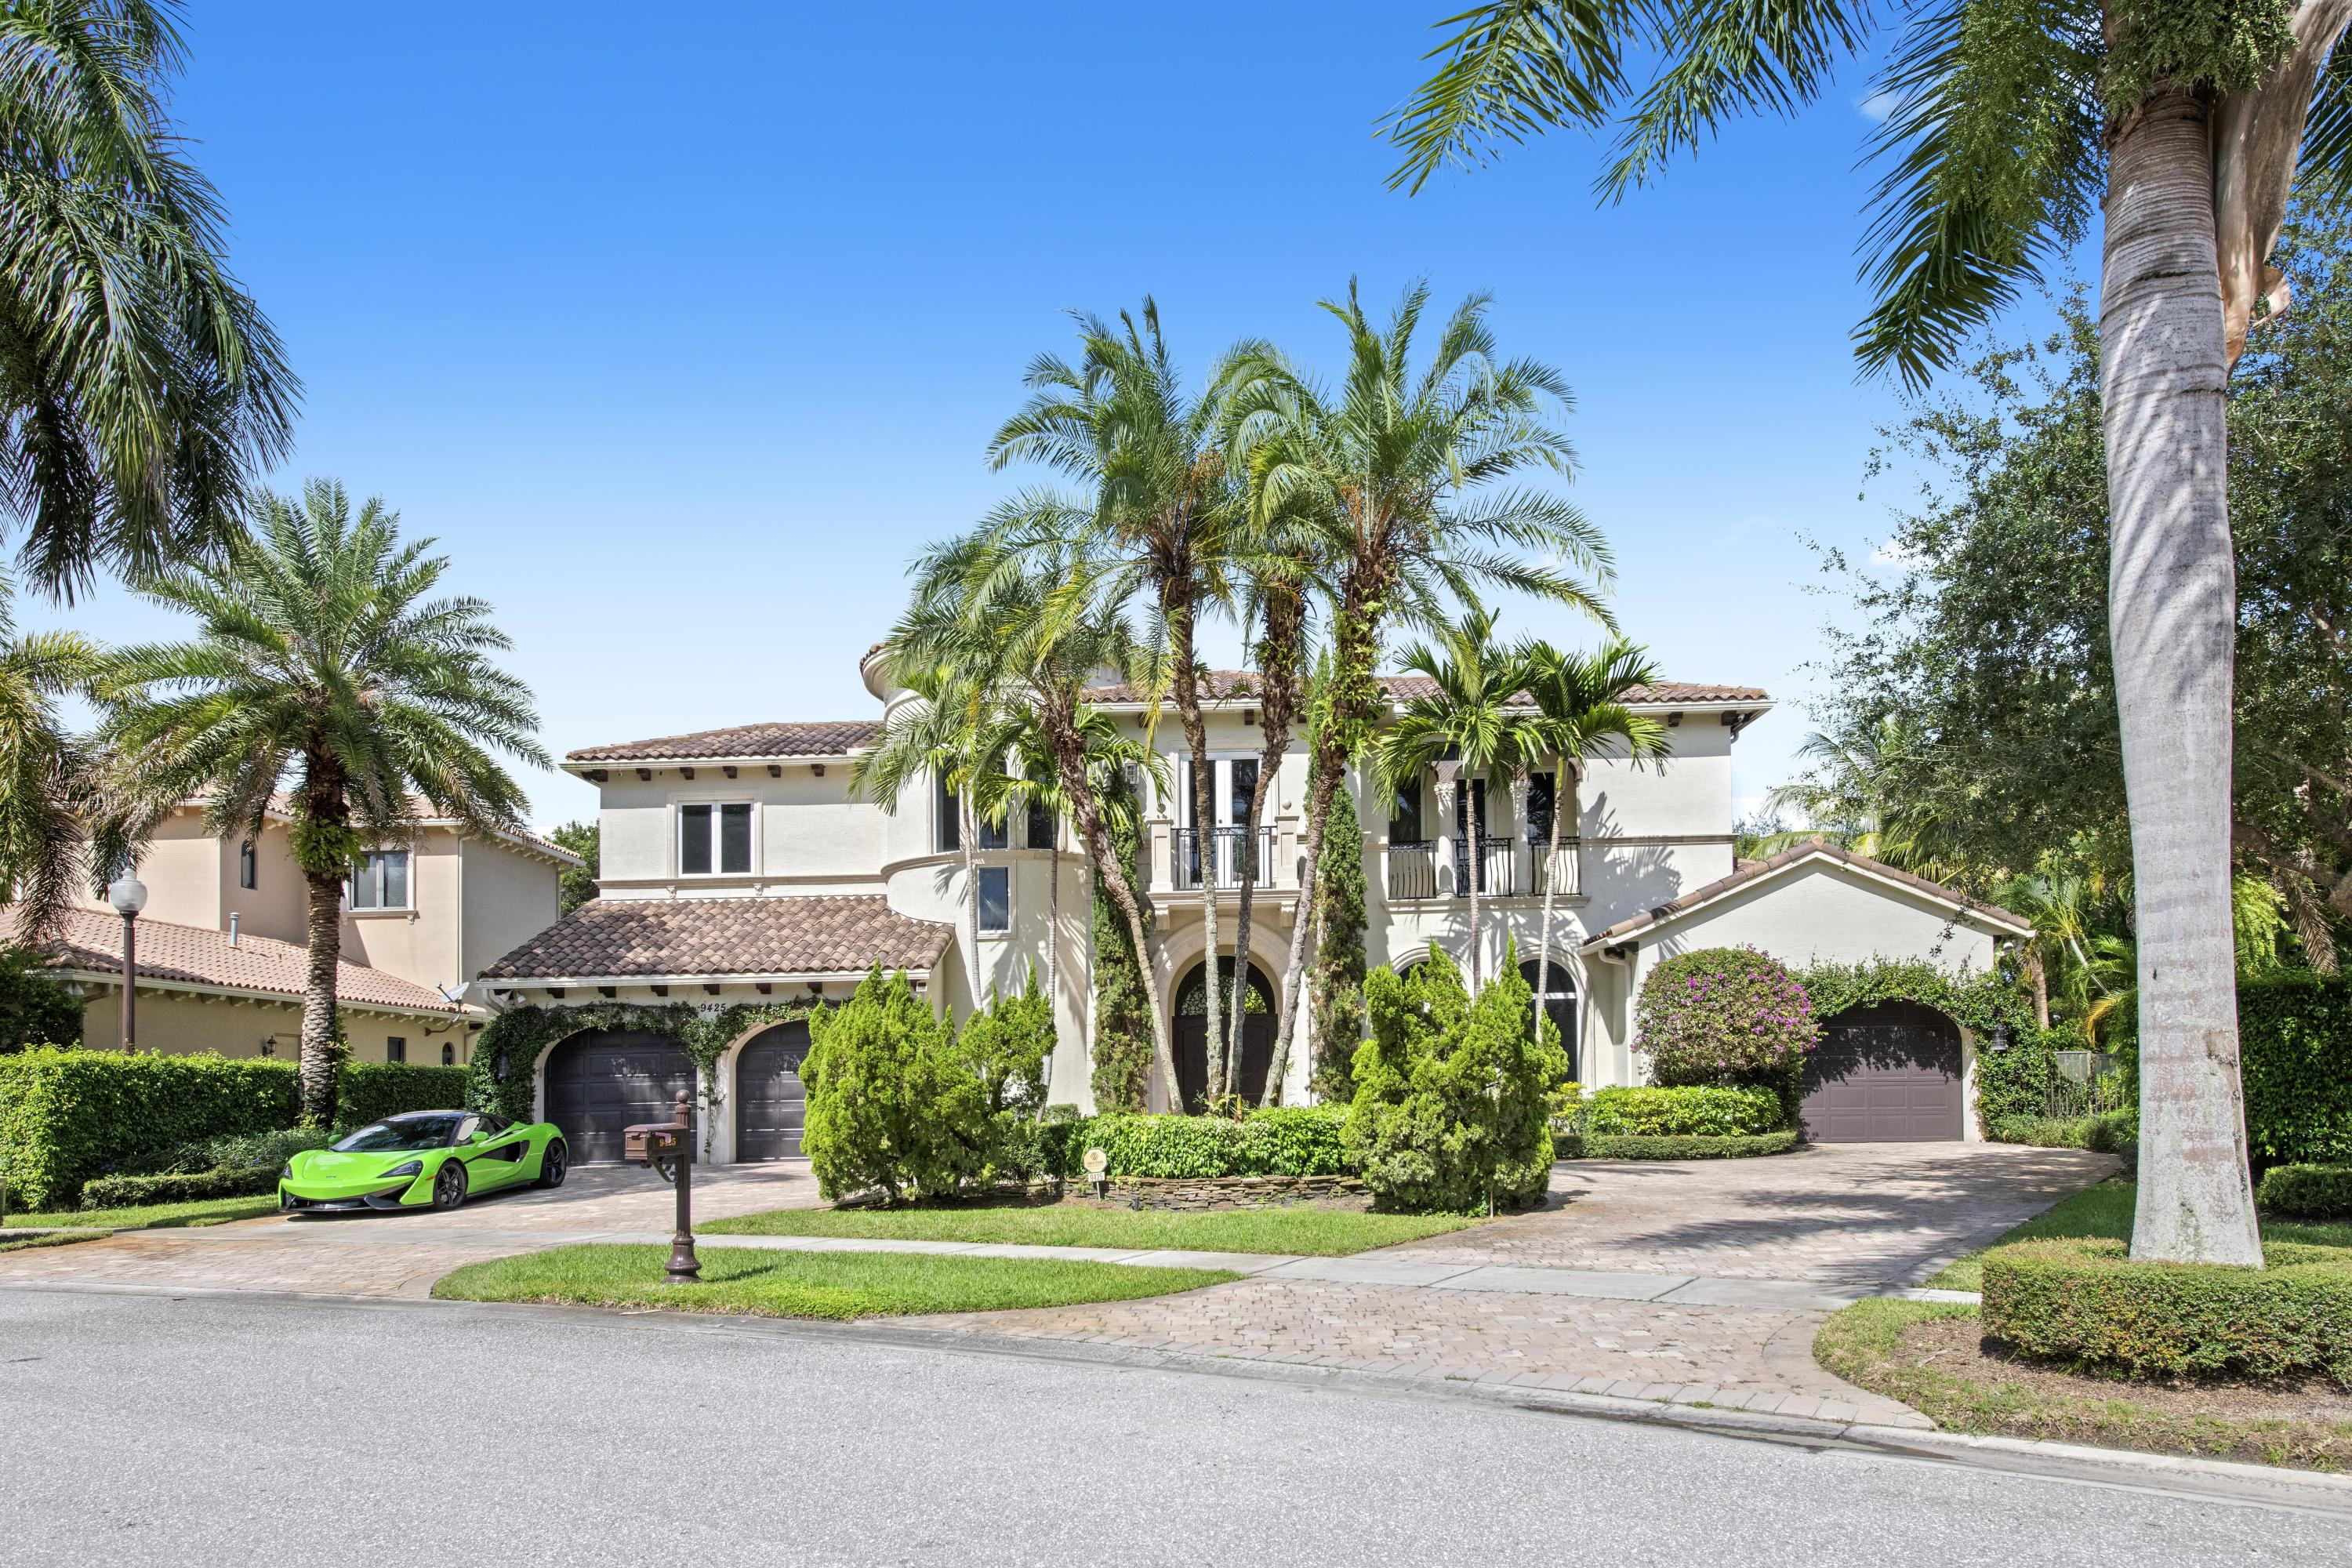 9425 Grand Estates Way - Boca Raton, Florida